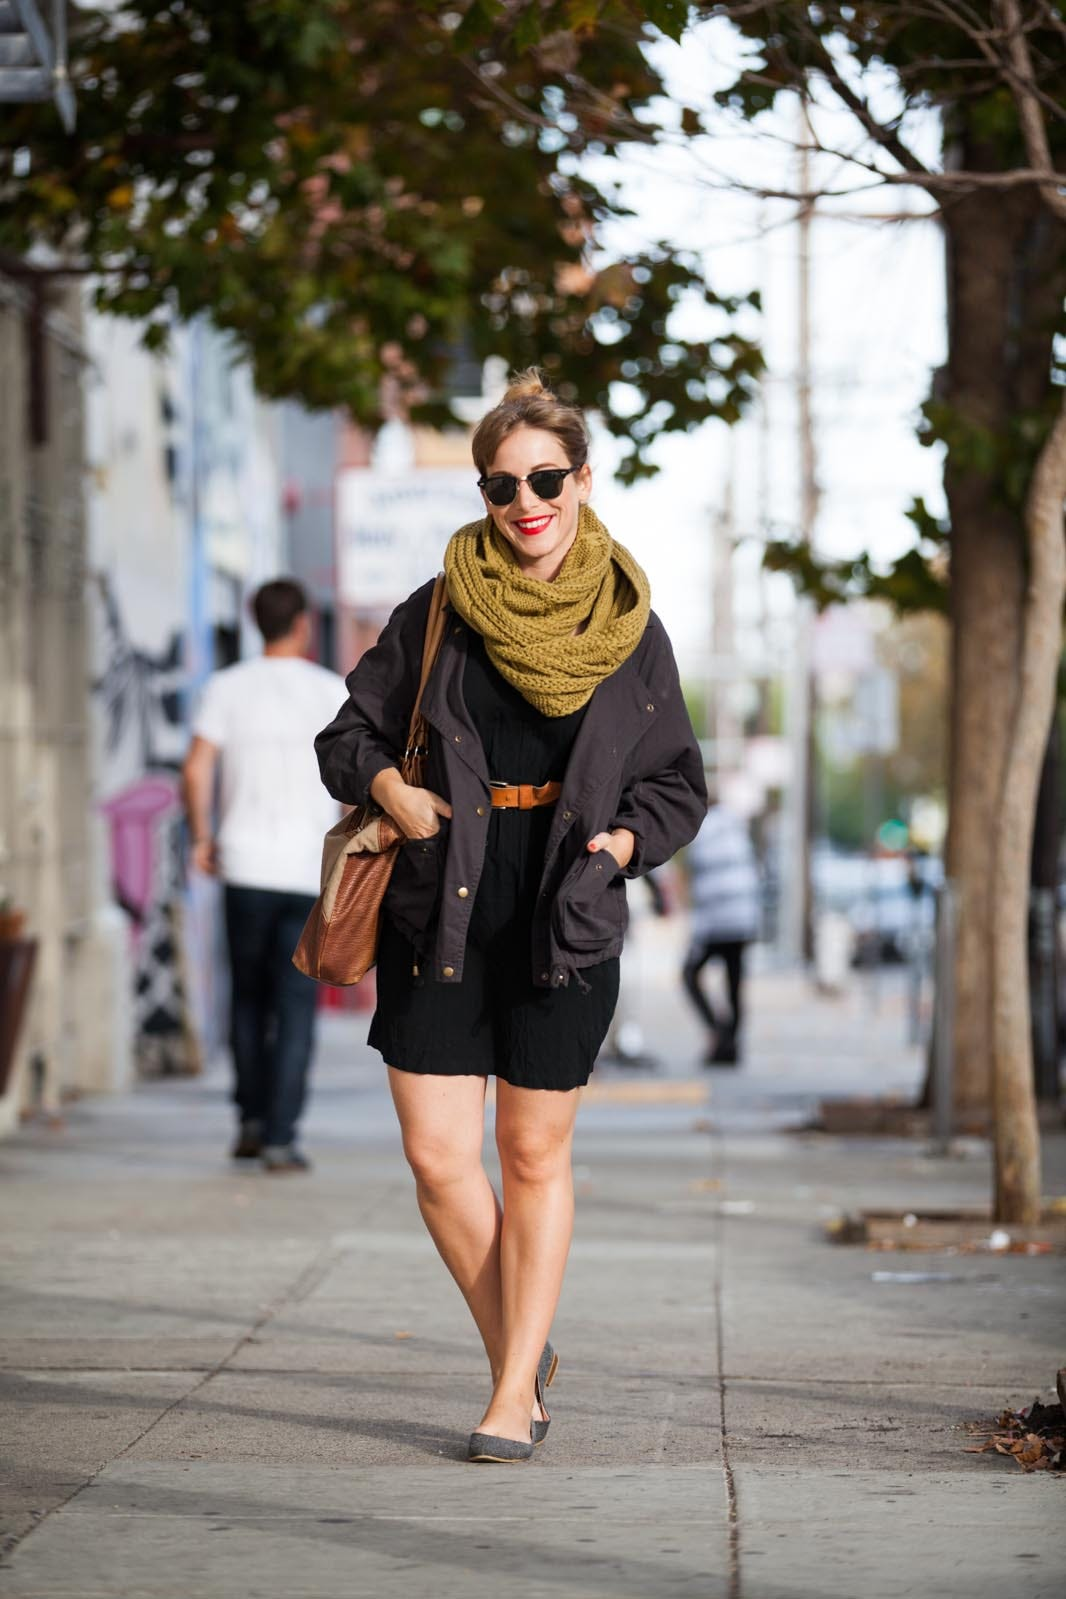 aa567c4bc34 Fall Street Style - Beautiful Cold Weather Outfits